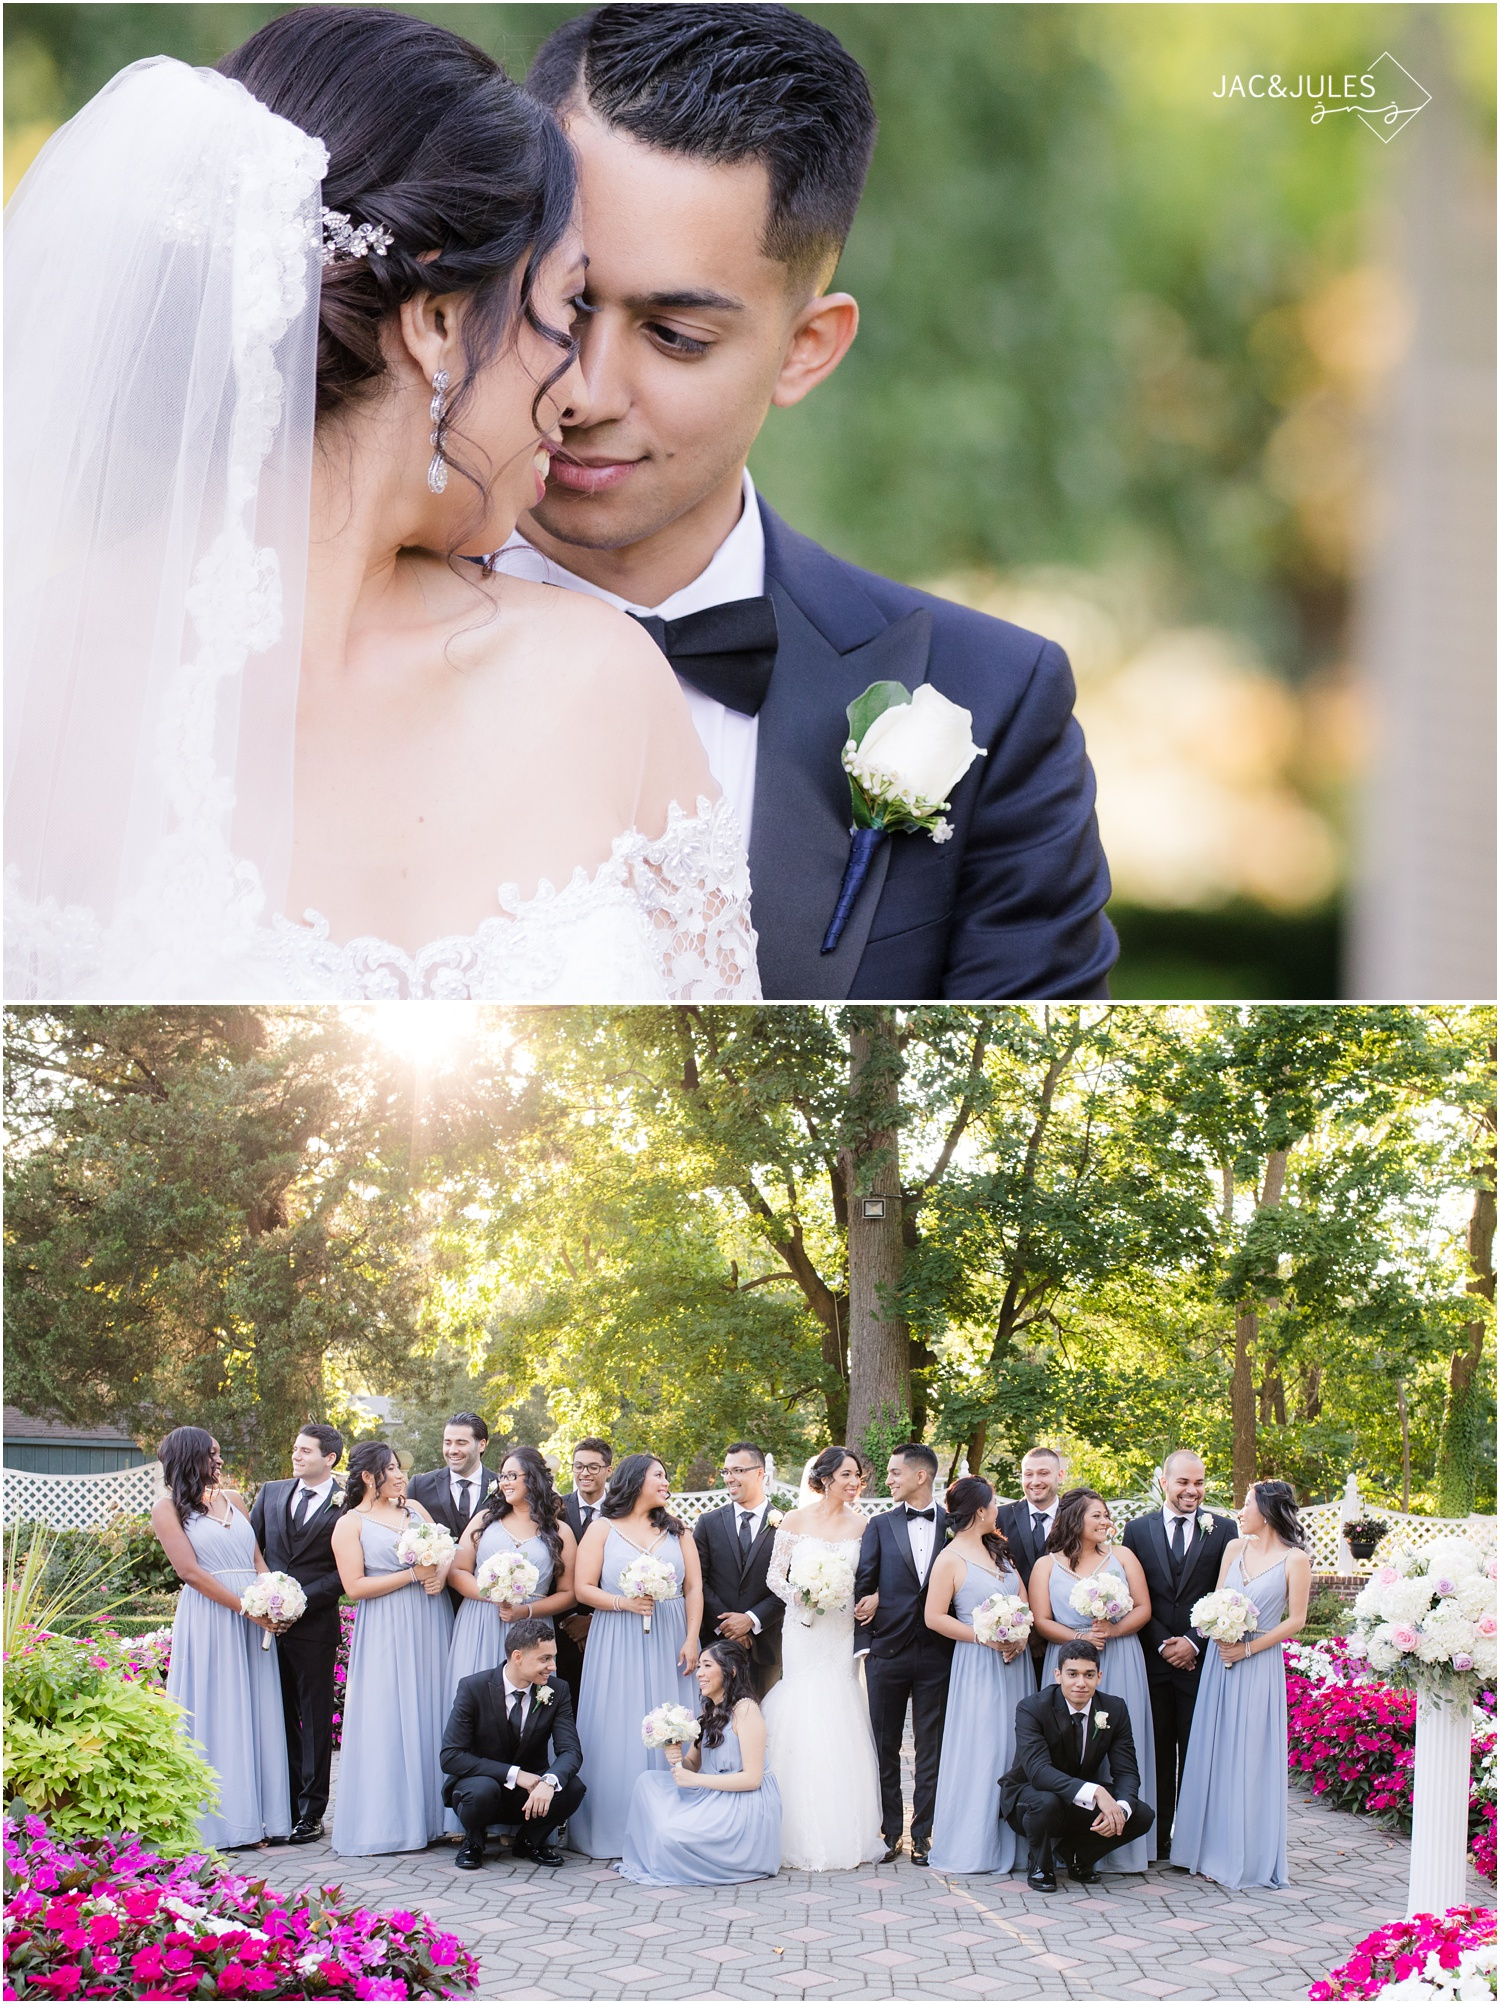 Romantic Bride and groom picture and bridal party portrait at The Shadowbrook in Shrewsbury, NJ.